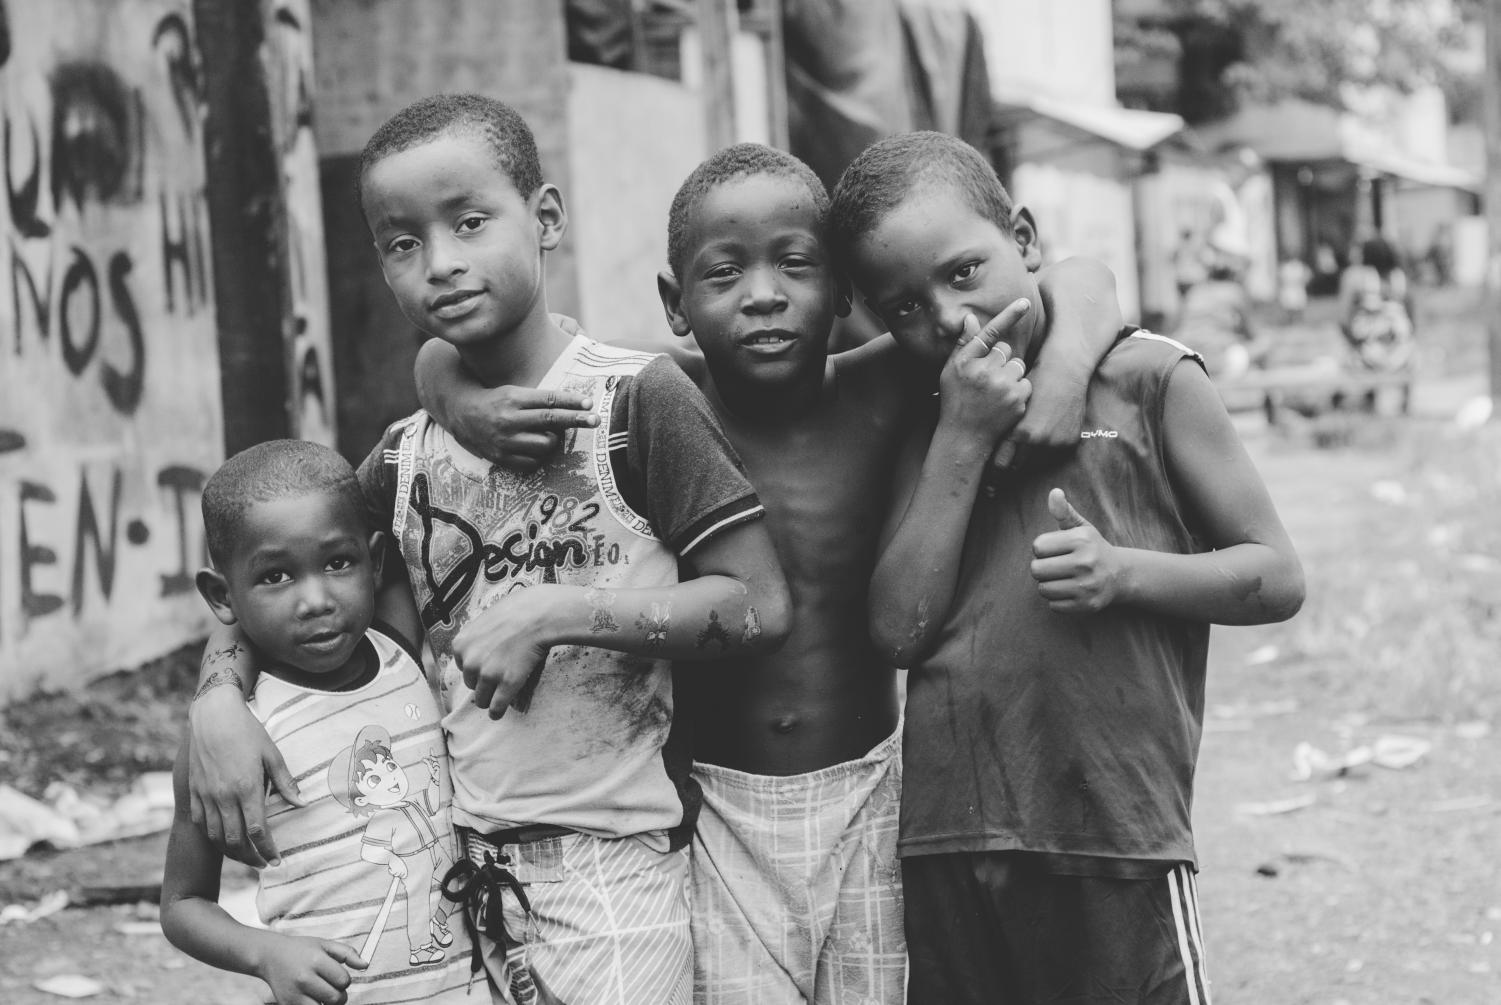 On Aug. 13, 2014, young boys pose for the camera in the slums of Curundú, a subdivision of Panamá City, Panamá.